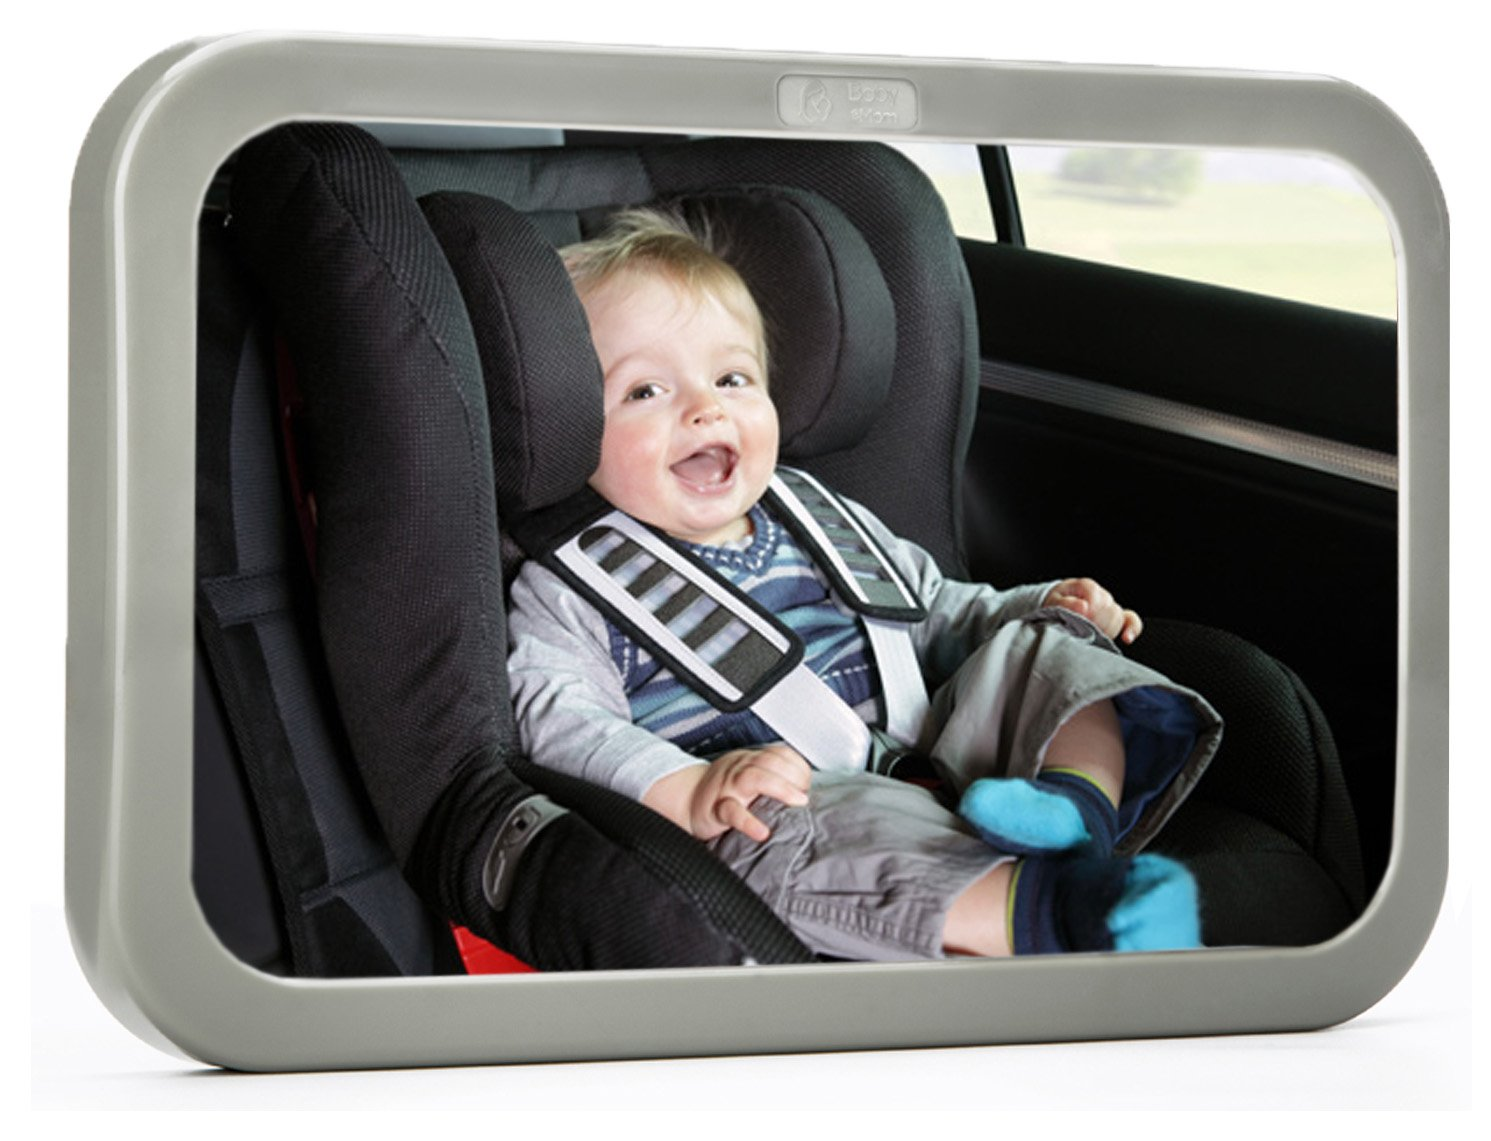 1 Back Seat Mirror Rear View Baby Mirror Easily Watch Your Precious Baby Mom Child In Car Adjustable Convex And Shatter Proof Glass By Baby Mom Baby